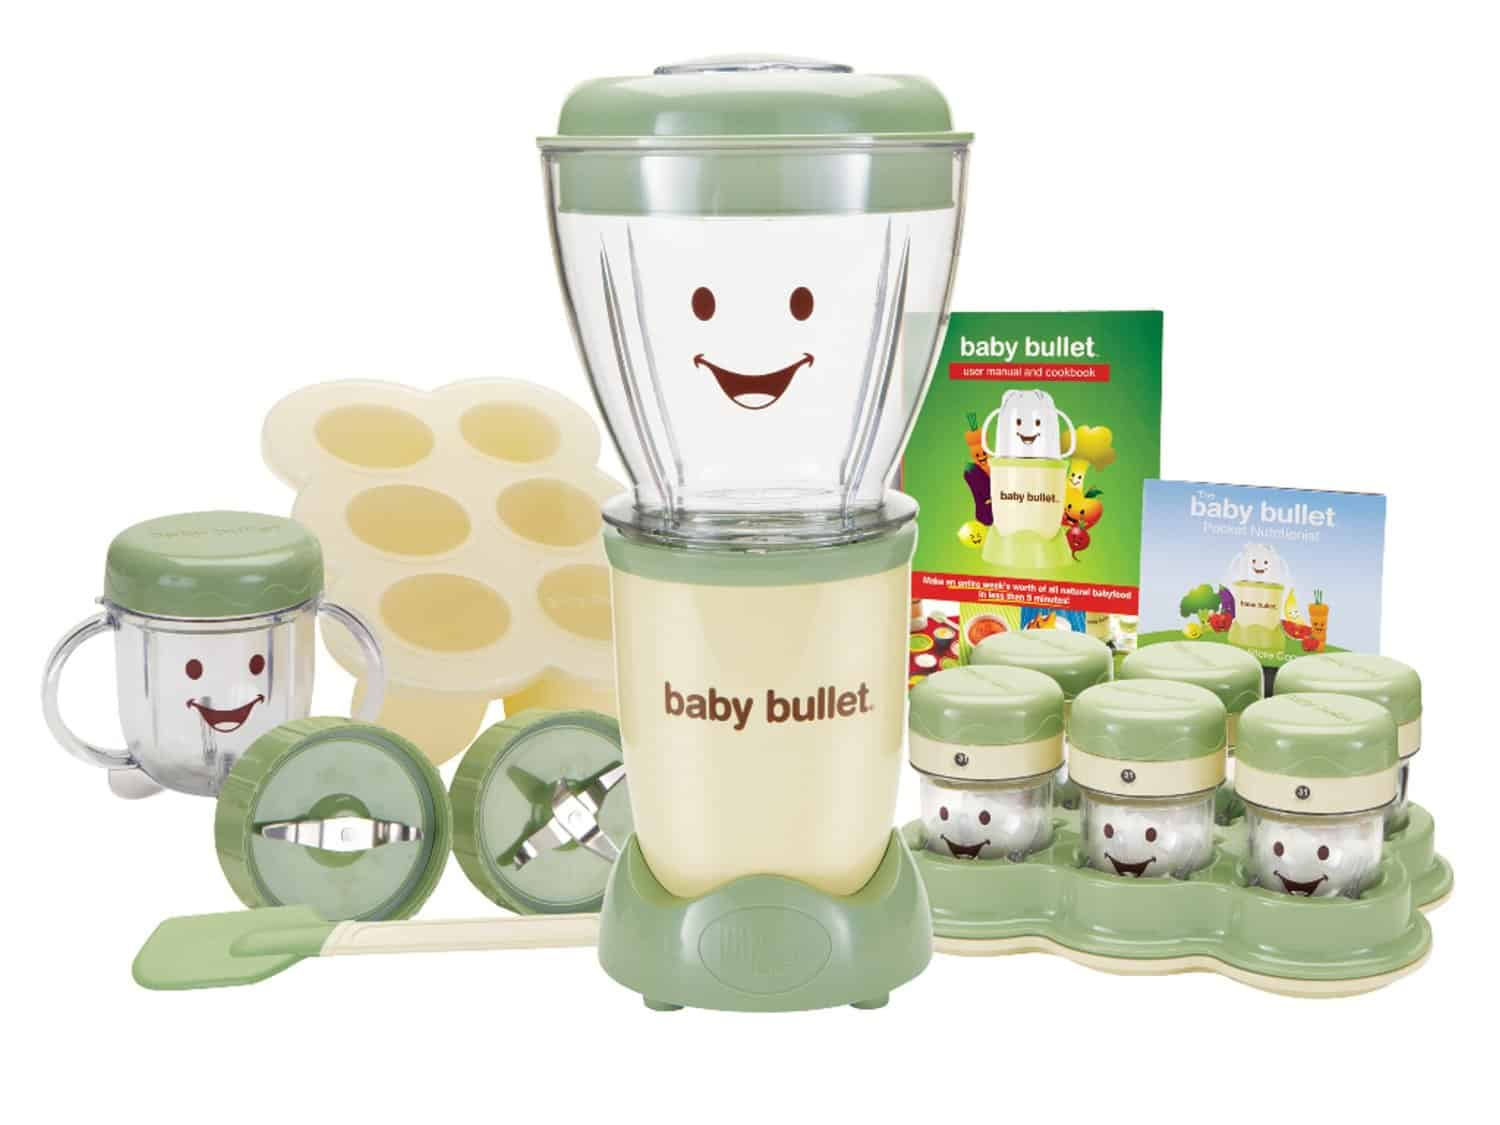 Food Processor review: Baby Bullet